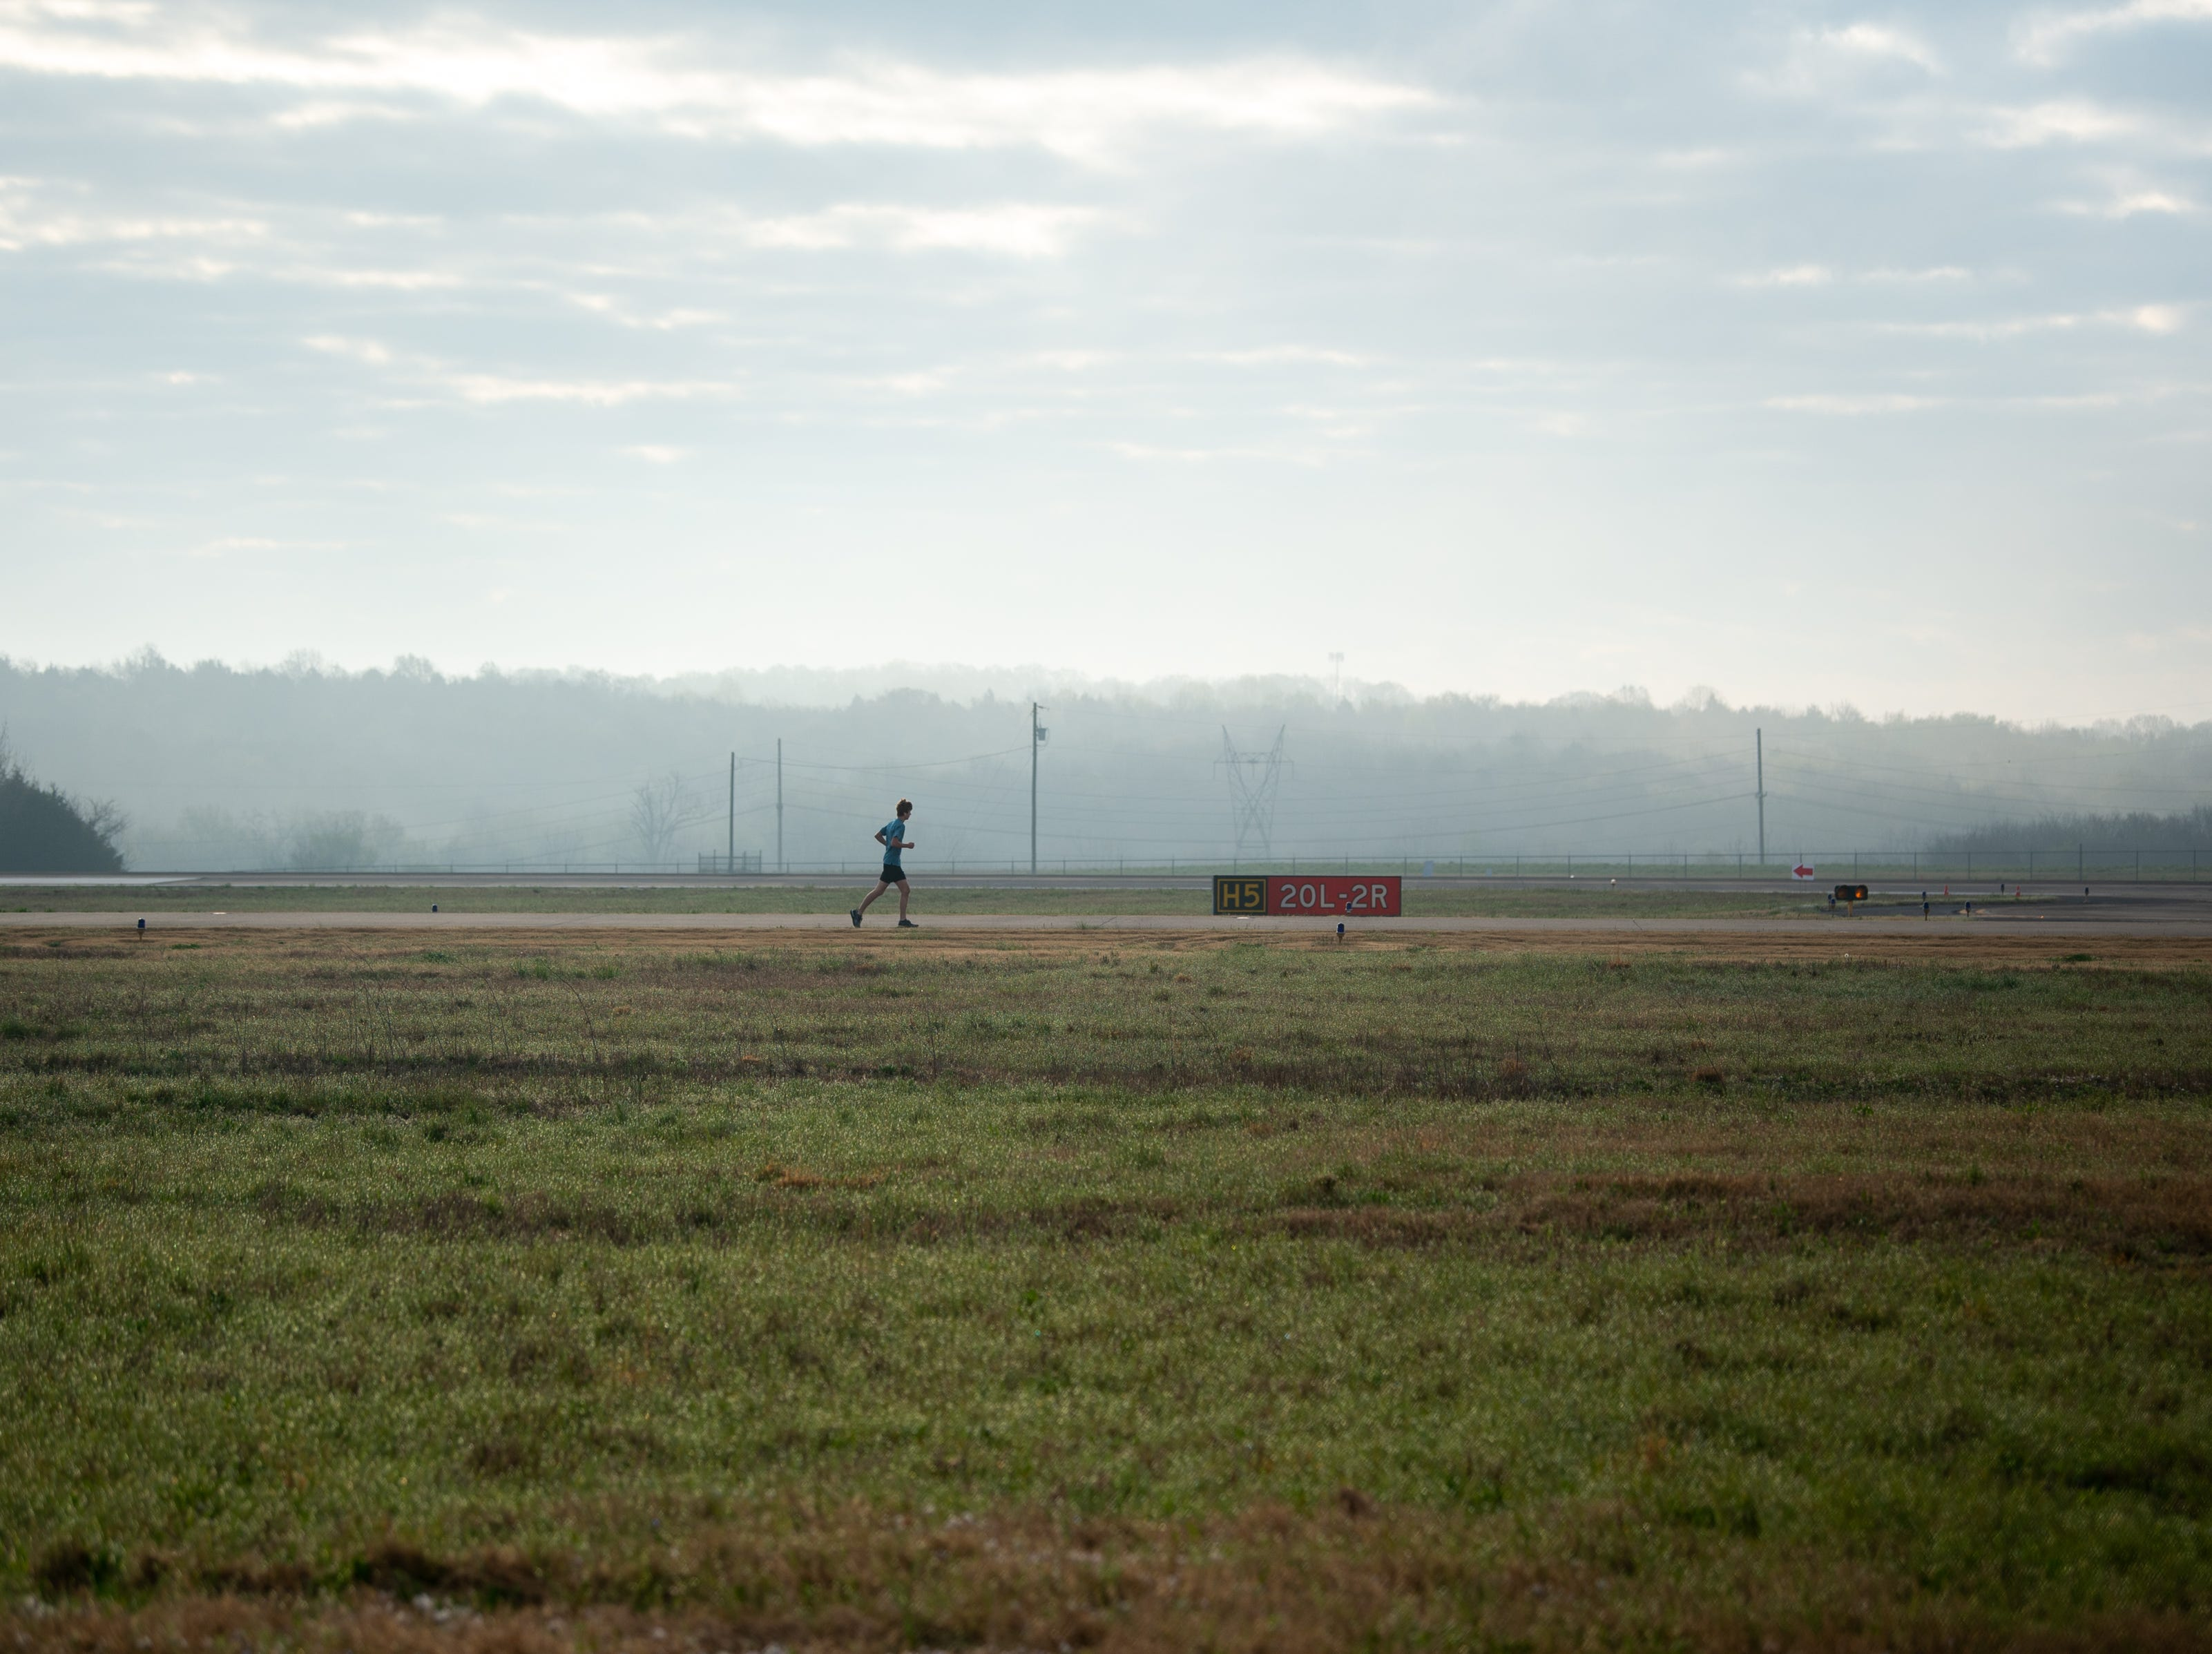 A runner warms up before the BNA 5K on the Runway at Nashville International Airport on Runway 2R/20L Saturday, April 6, 2019, in Nashville, Tenn.